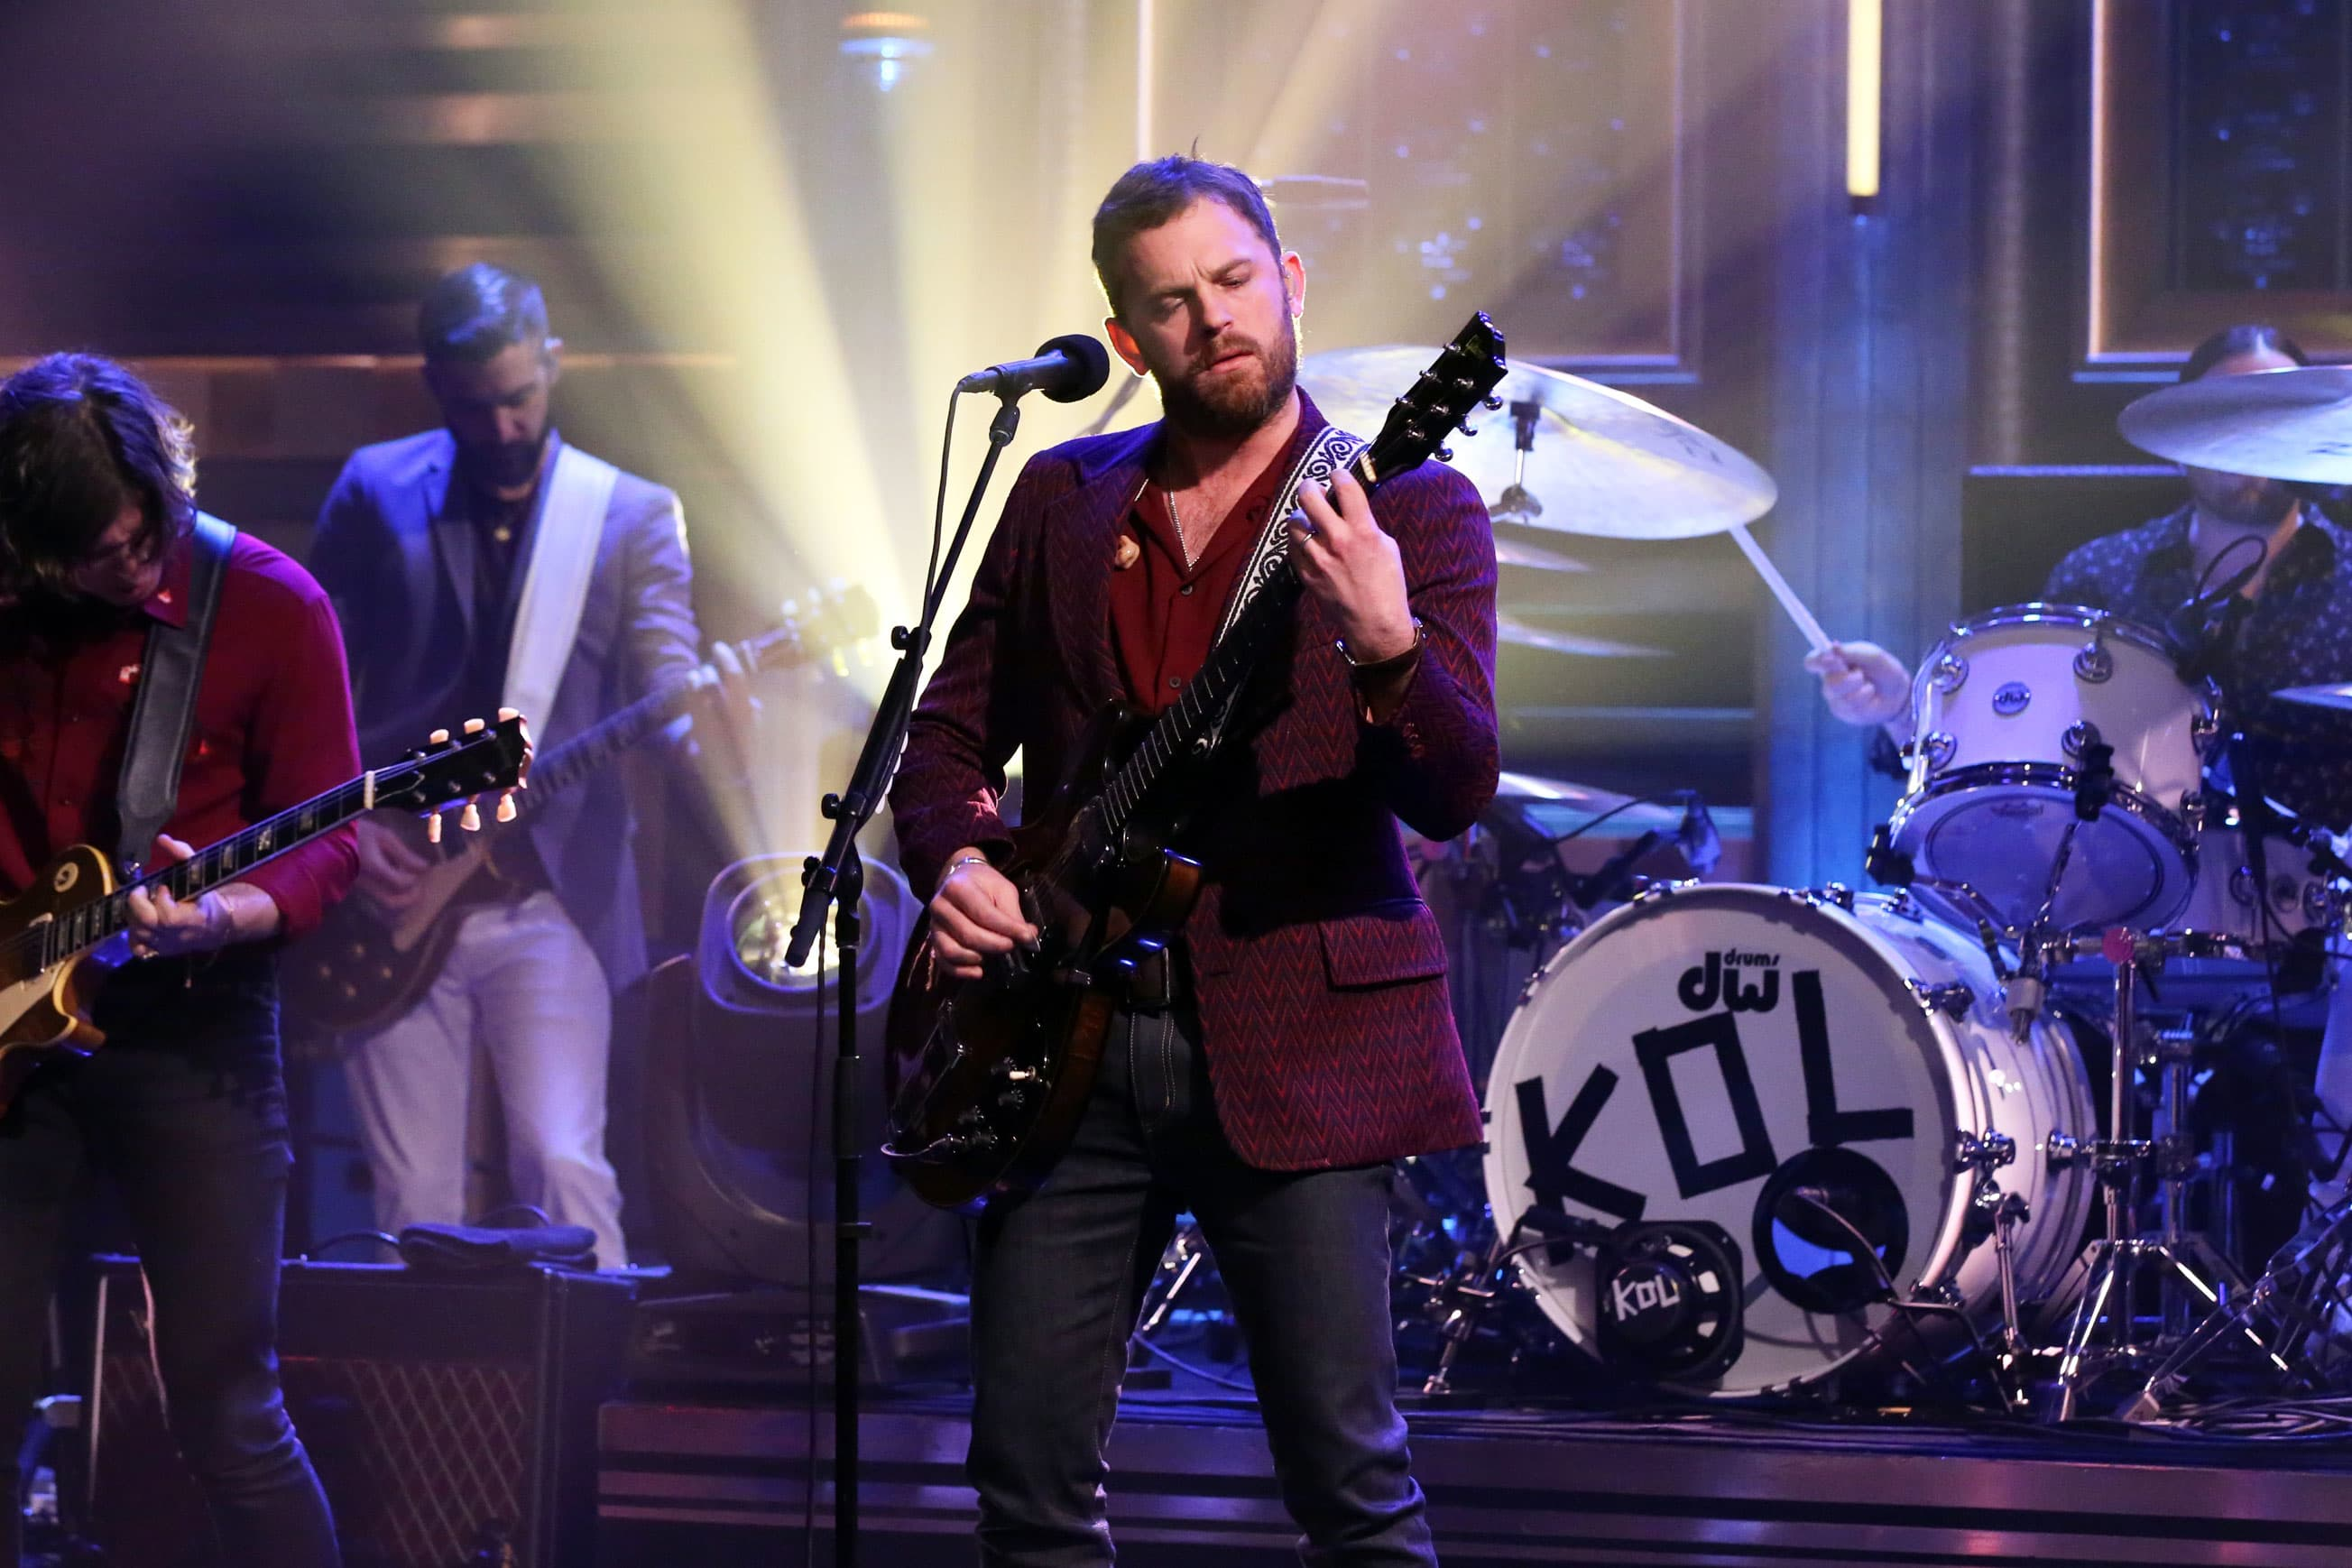 Rock band Kings of Leon will release new album as an NFT, making it a digital collector's item